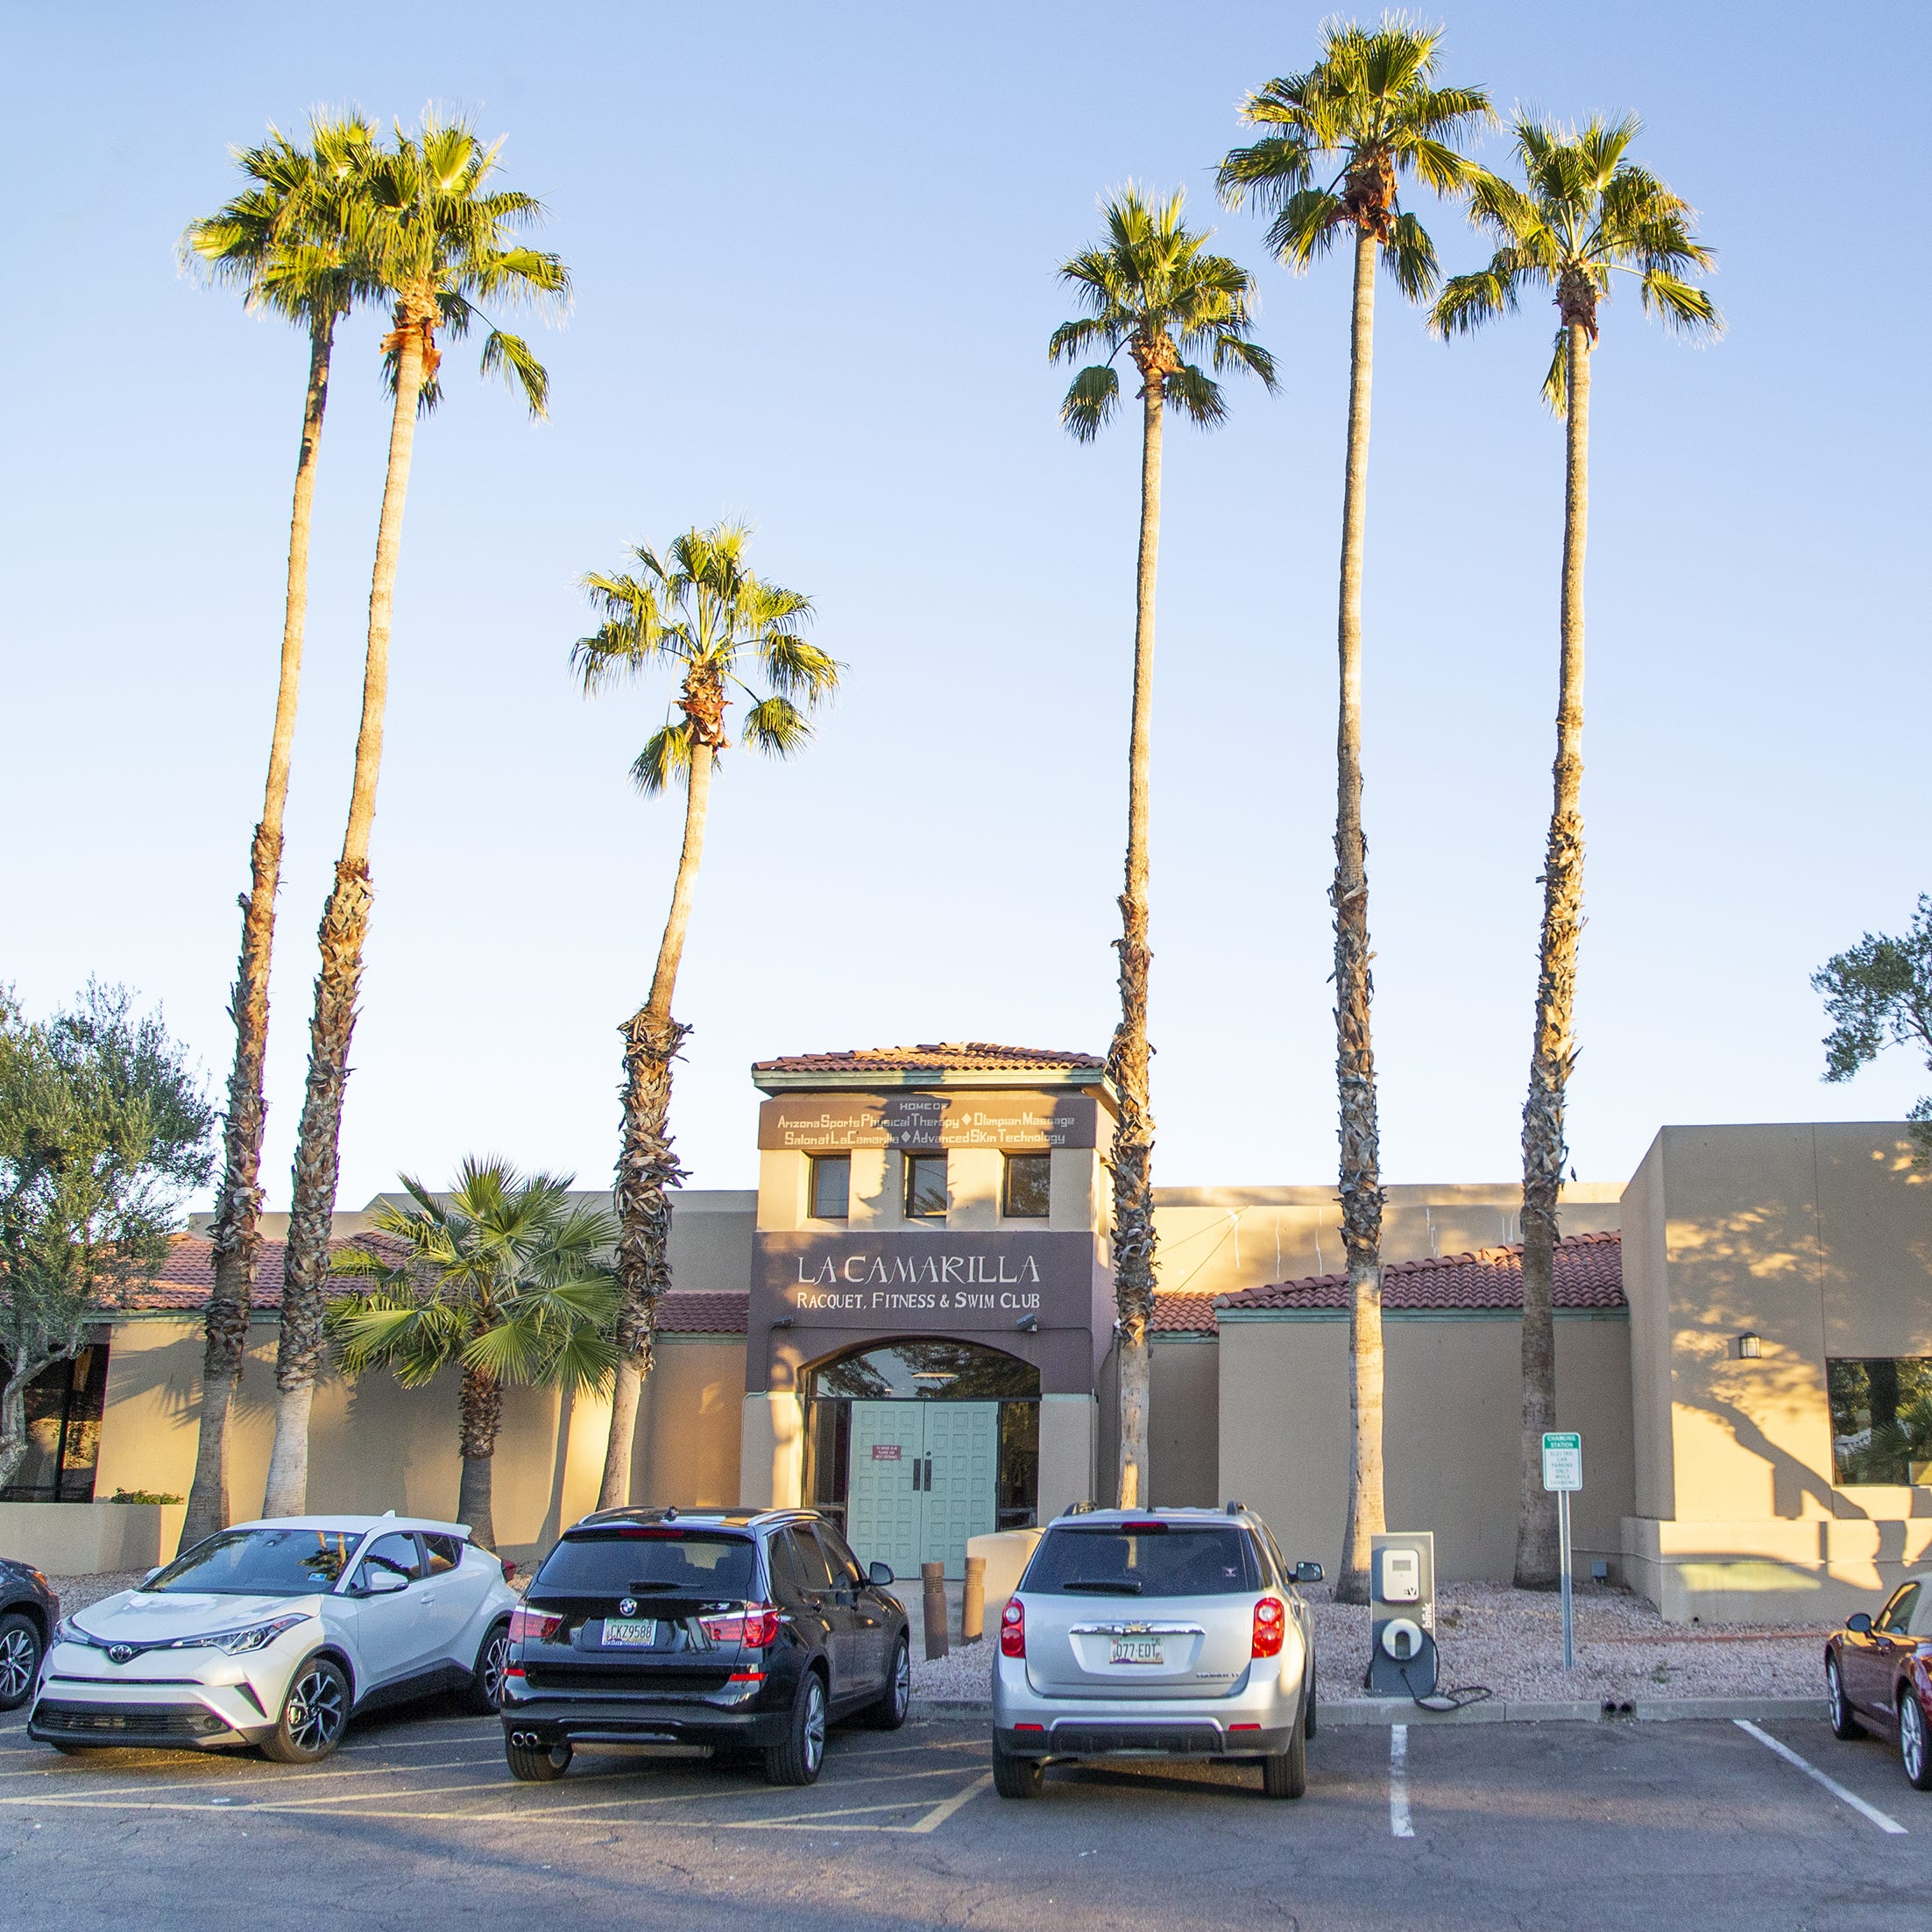 Scottsdale's La Camarilla to be razed for new Mountainside gym